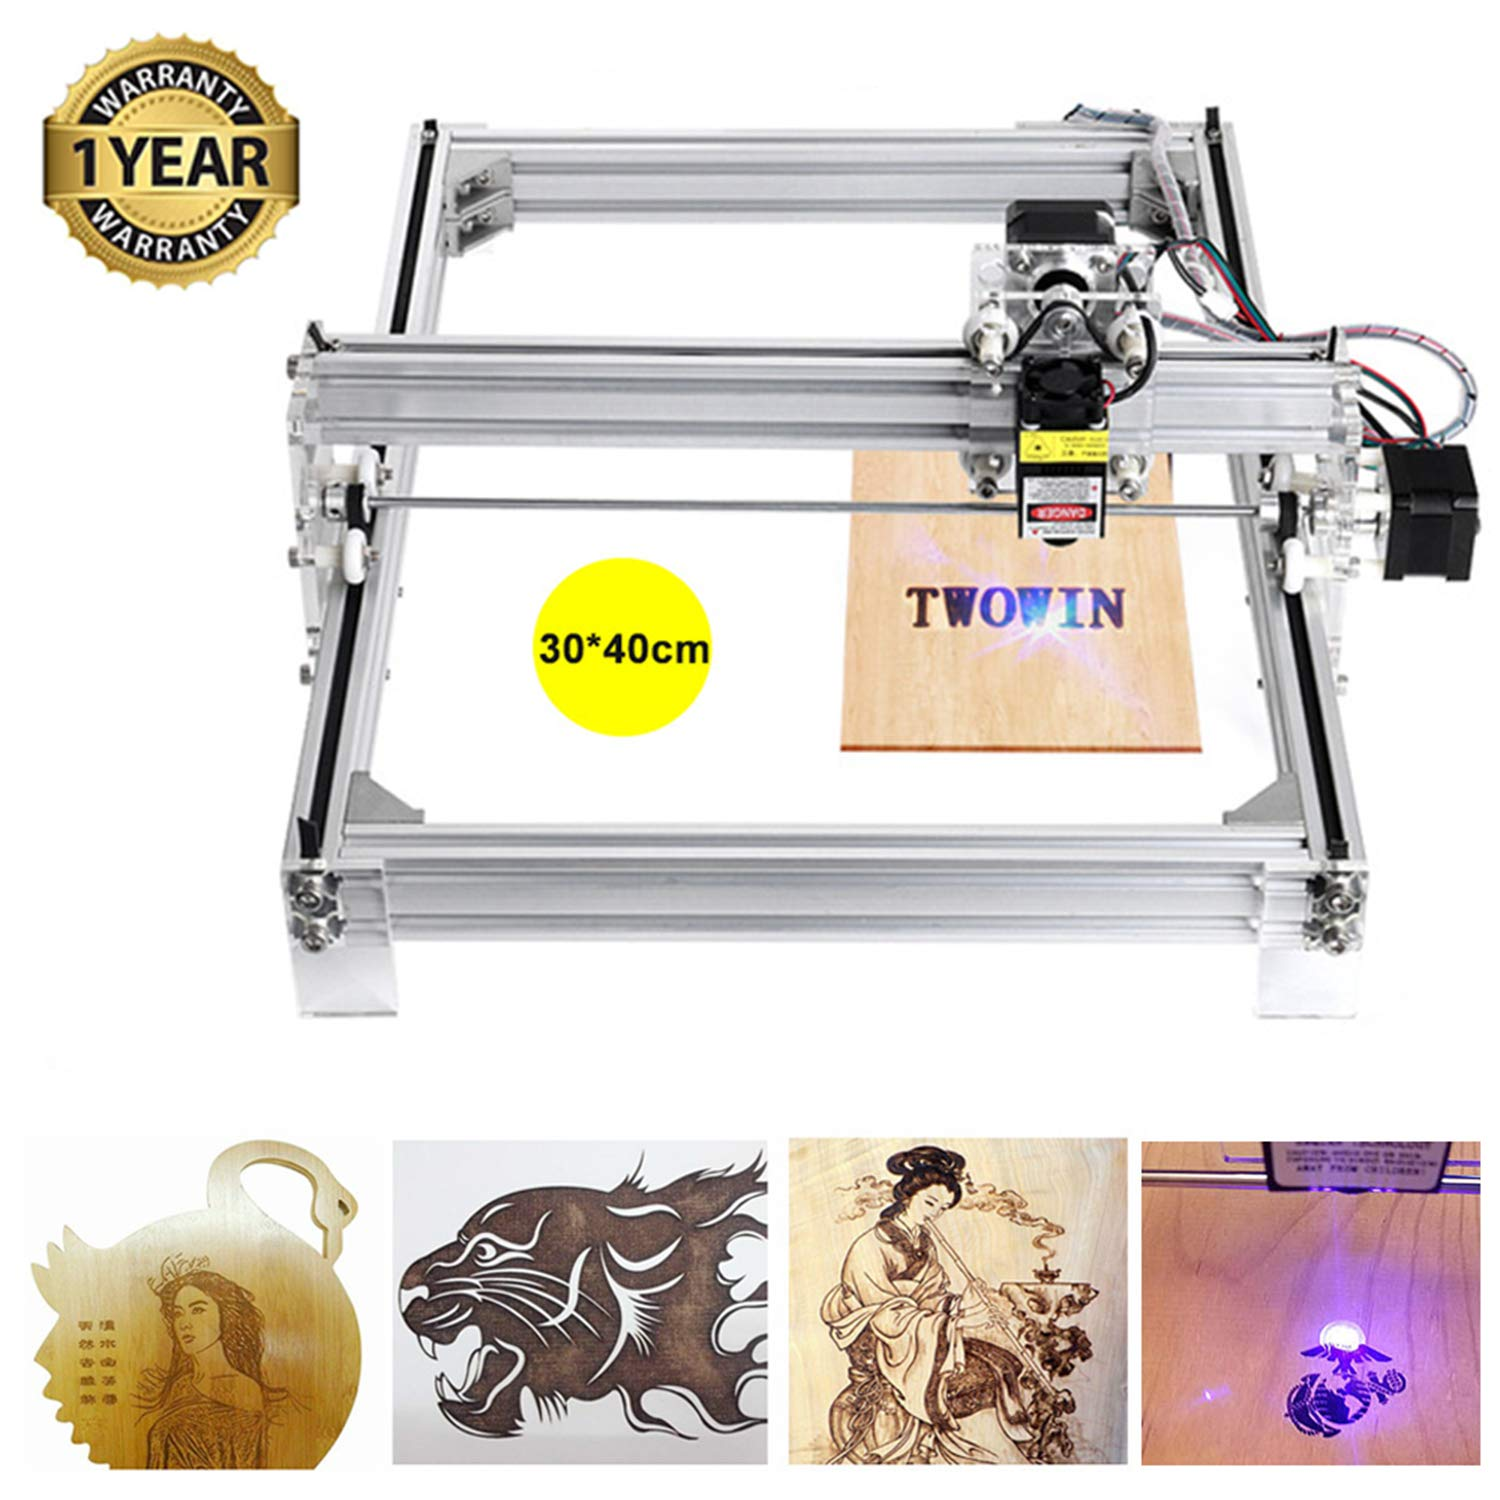 2500mw CNC Laser Engraving Machine Kits, 3040 Mini USB CNC Router Milling Carving Machine, Engraving Area 300mm x 400mm, Leather Wood PCB Plastic Carving Machine with Protective Glasses